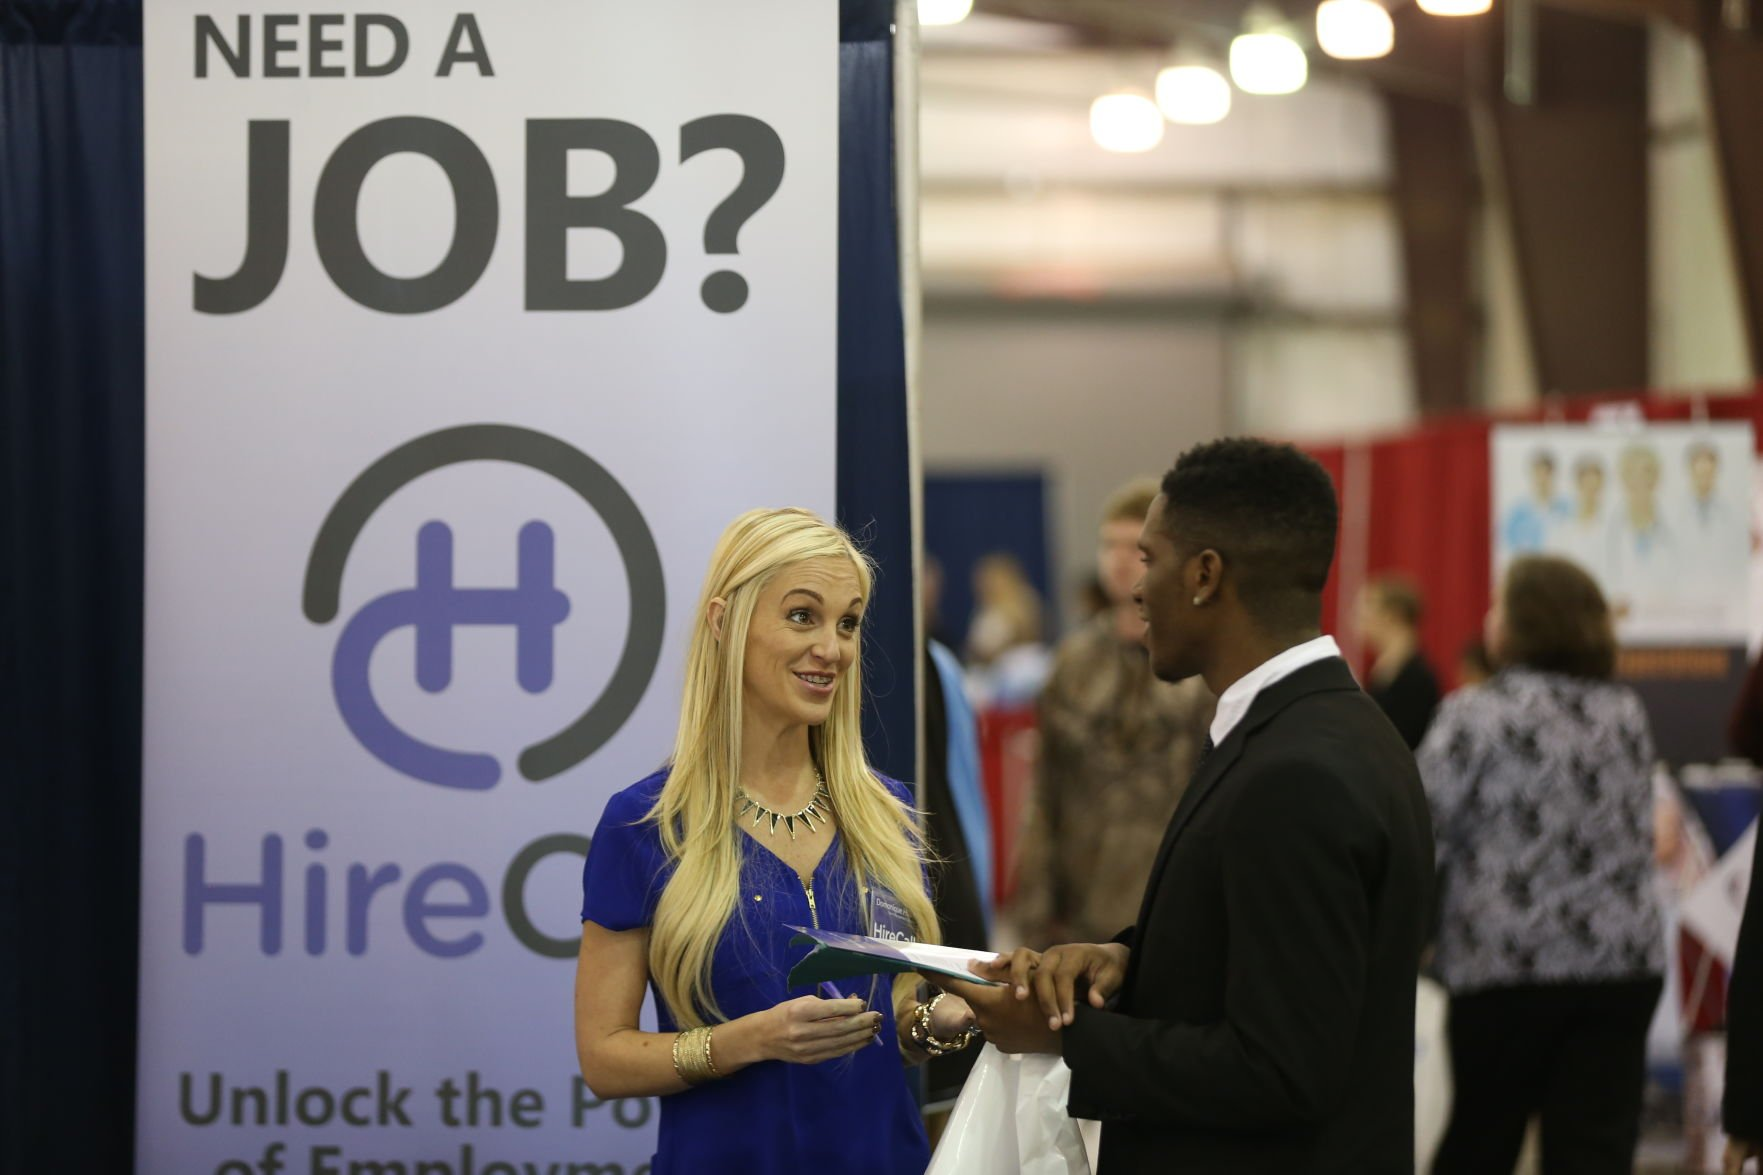 See the local employers that are hiring